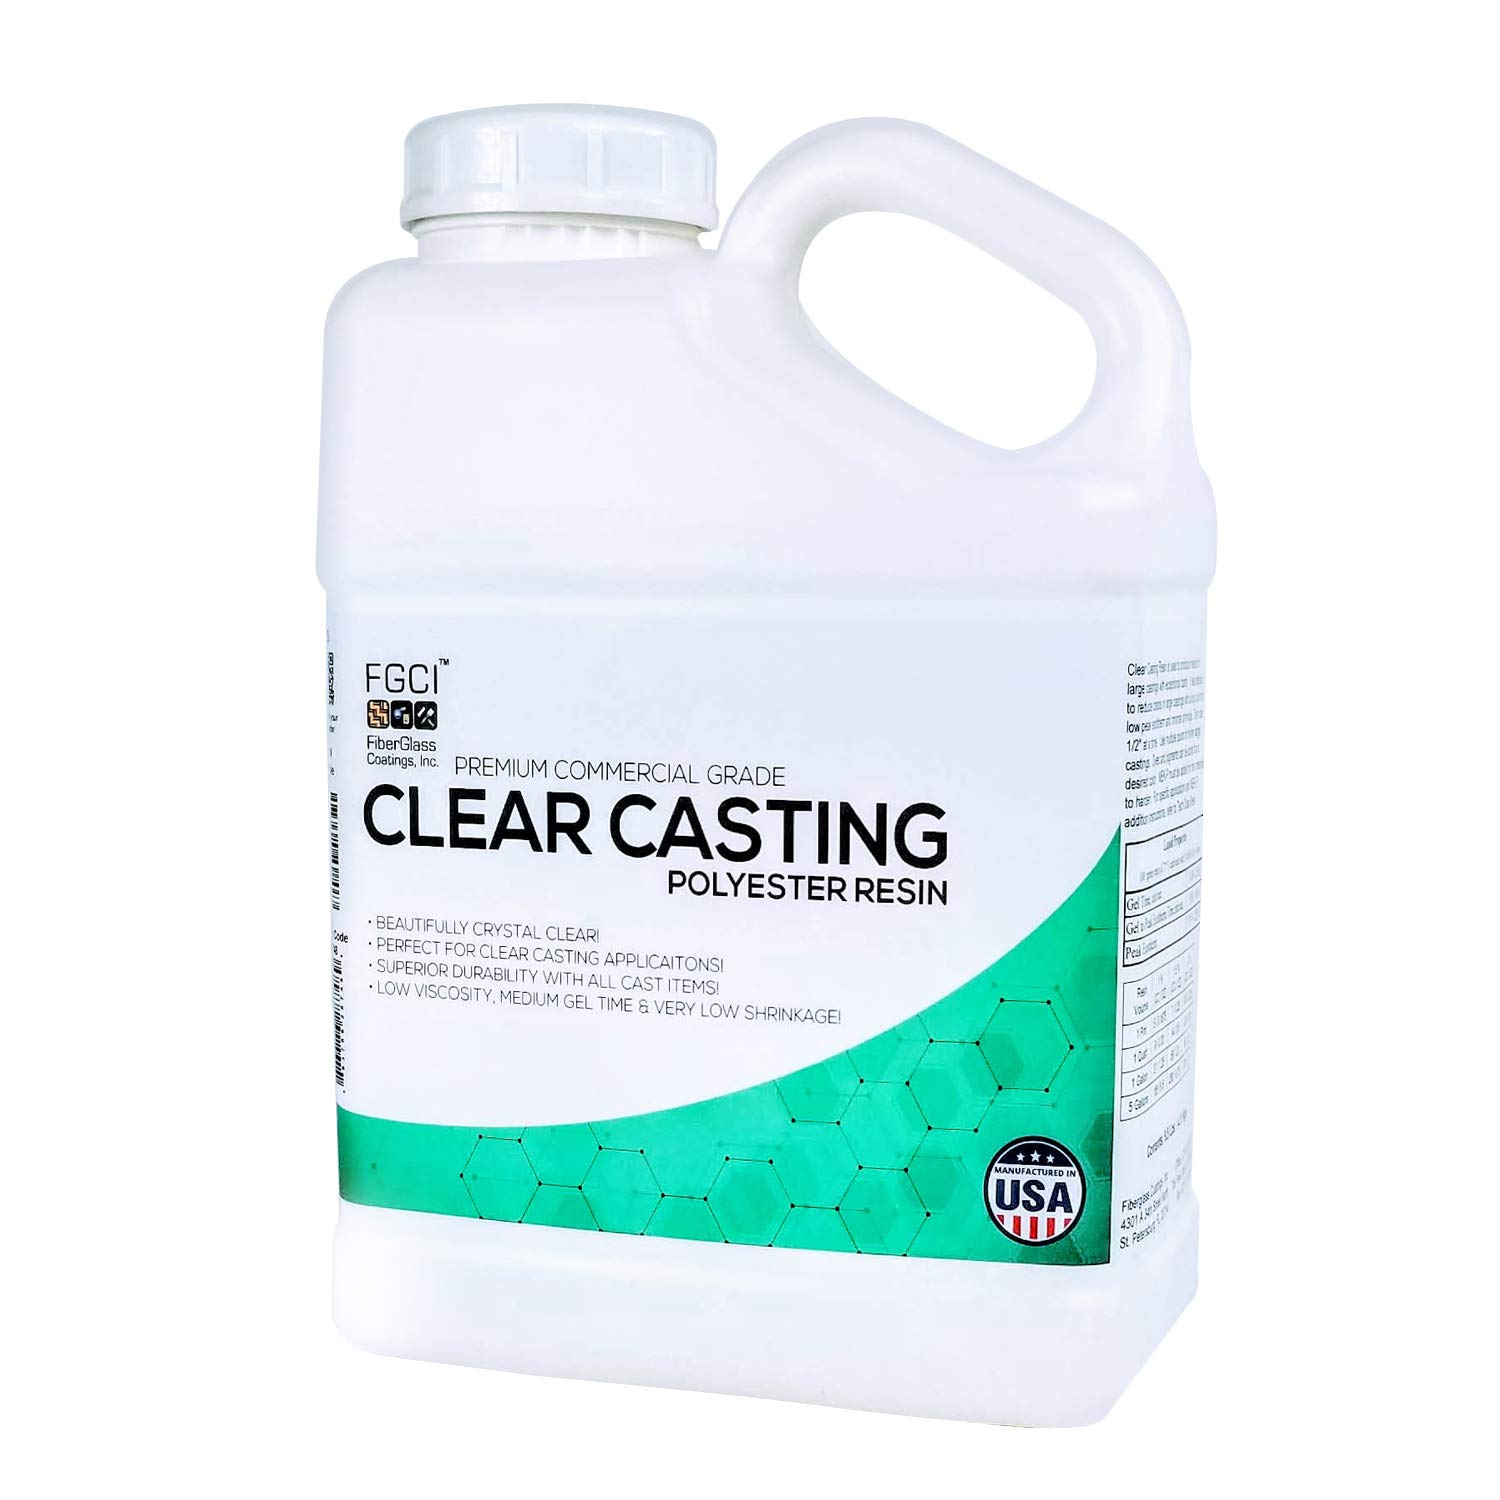 Clear Casting Resin, Polyester Resin, 1 Gallon w/Hardener, Liquid Plastic  Easy Cast, Resin Molds Resin Casting, Craft Water, Realistic Fake Water,